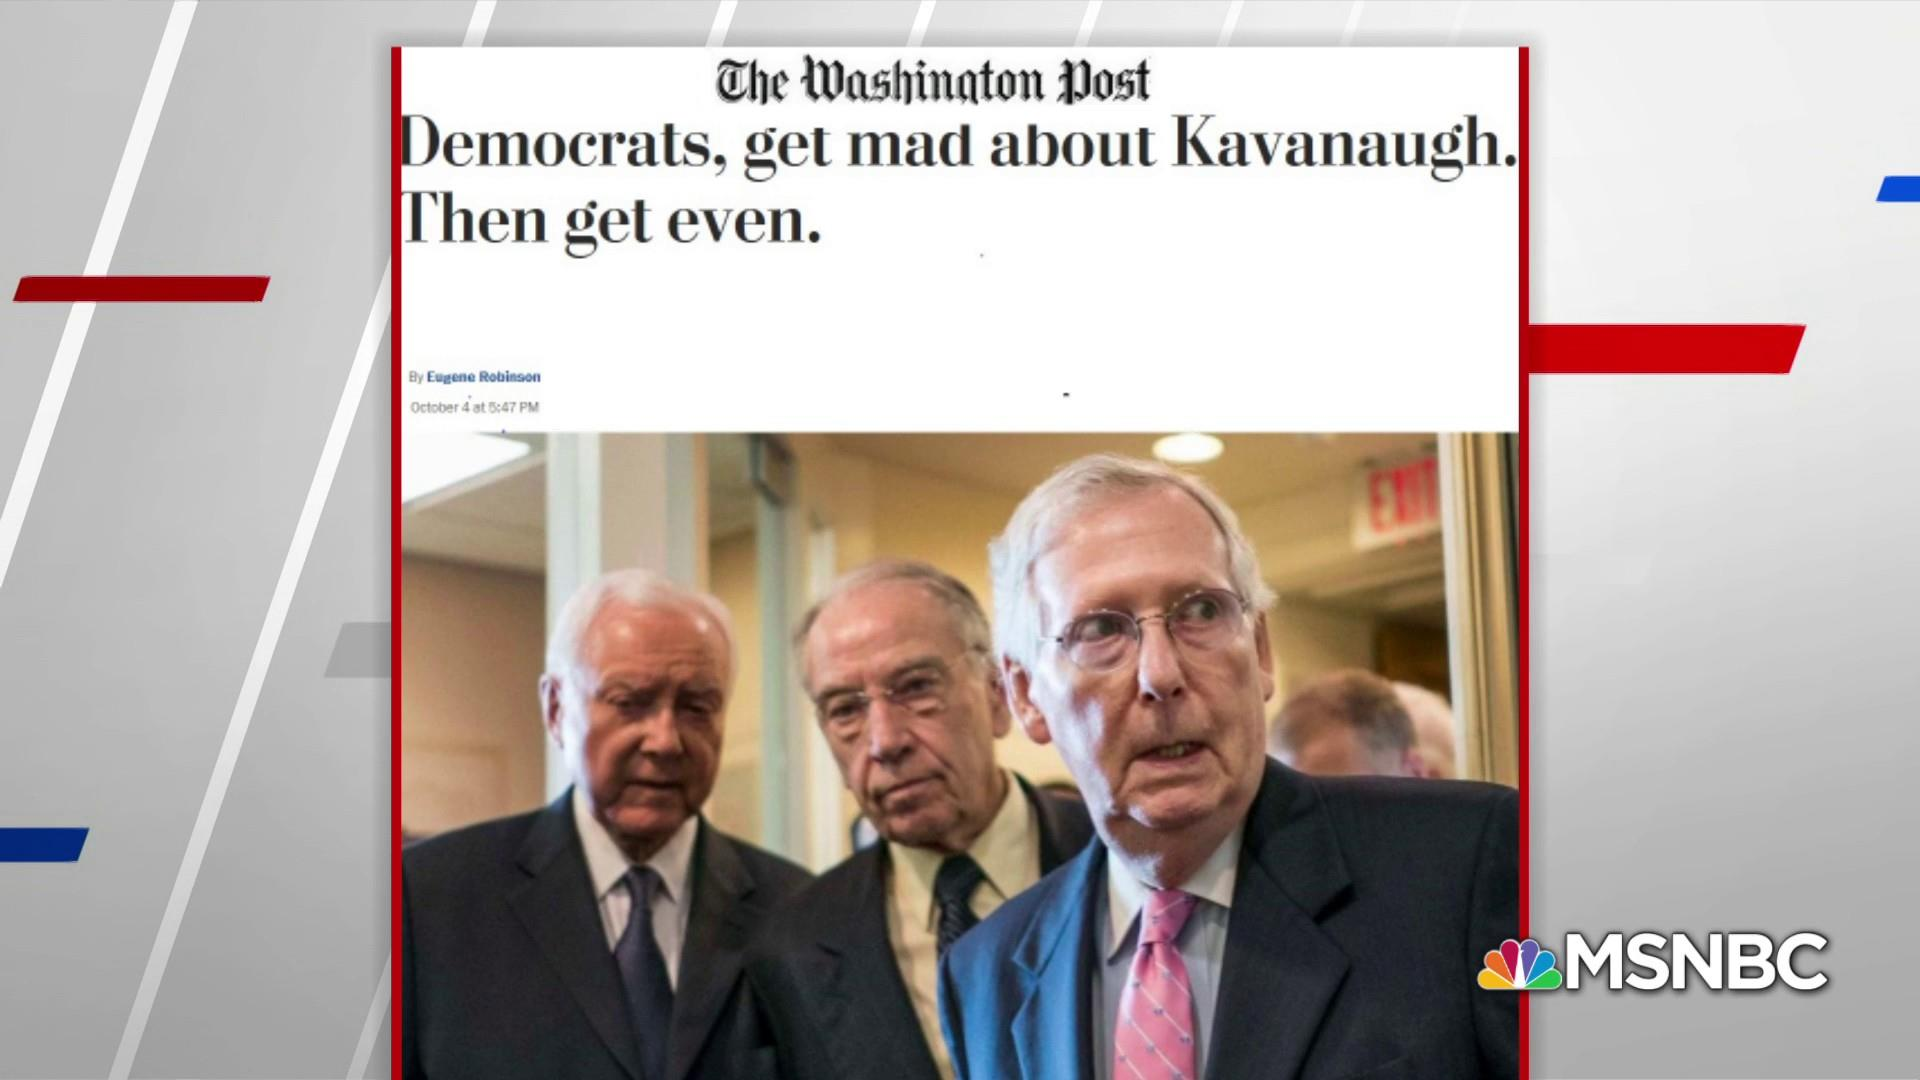 Eugene Robinson: Dems need to get mad about Kavanaugh